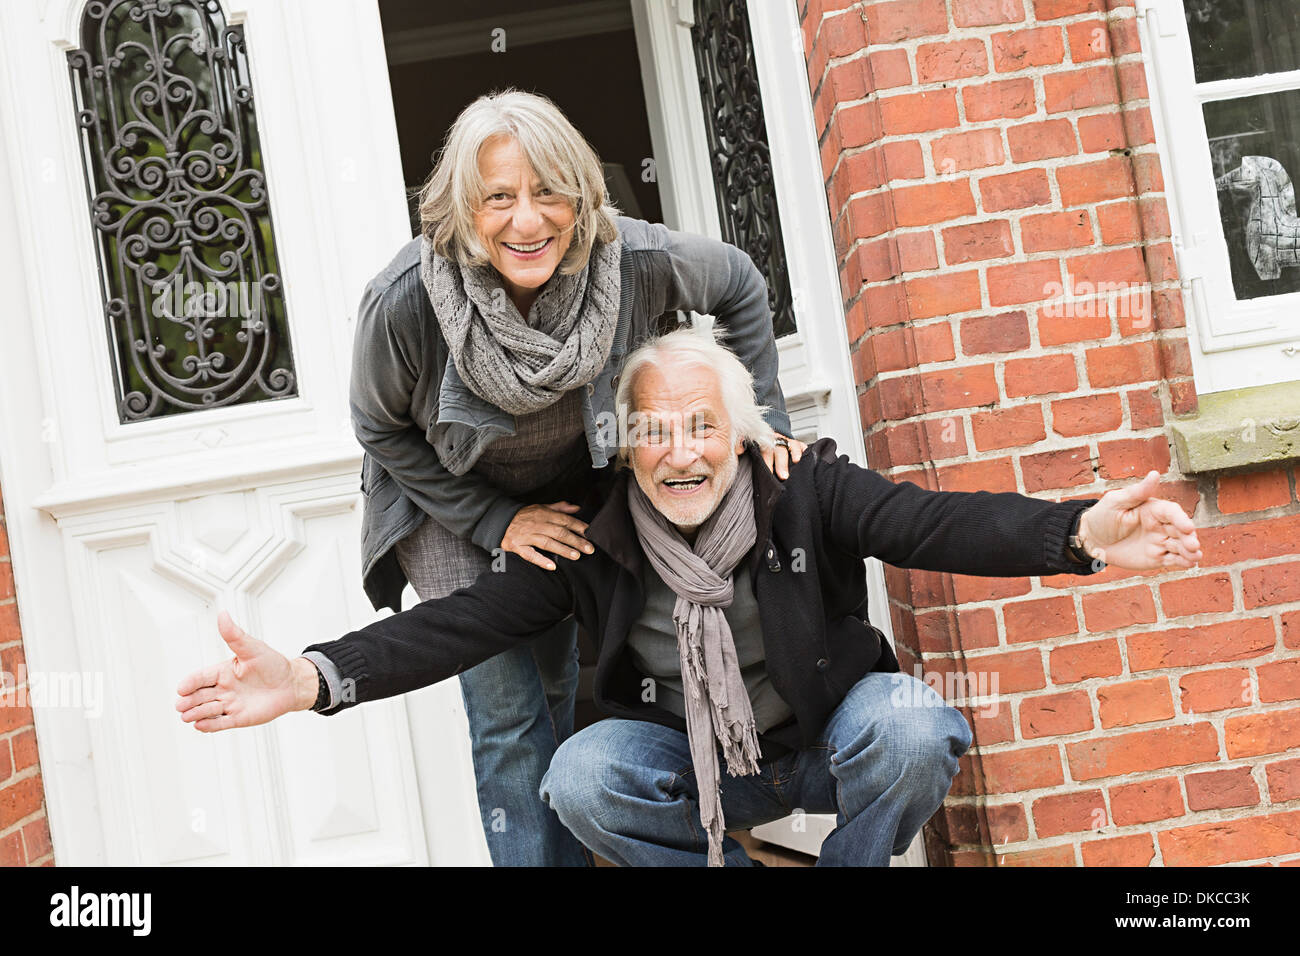 Senior couple by front door, man crouching with open arms - Stock Image